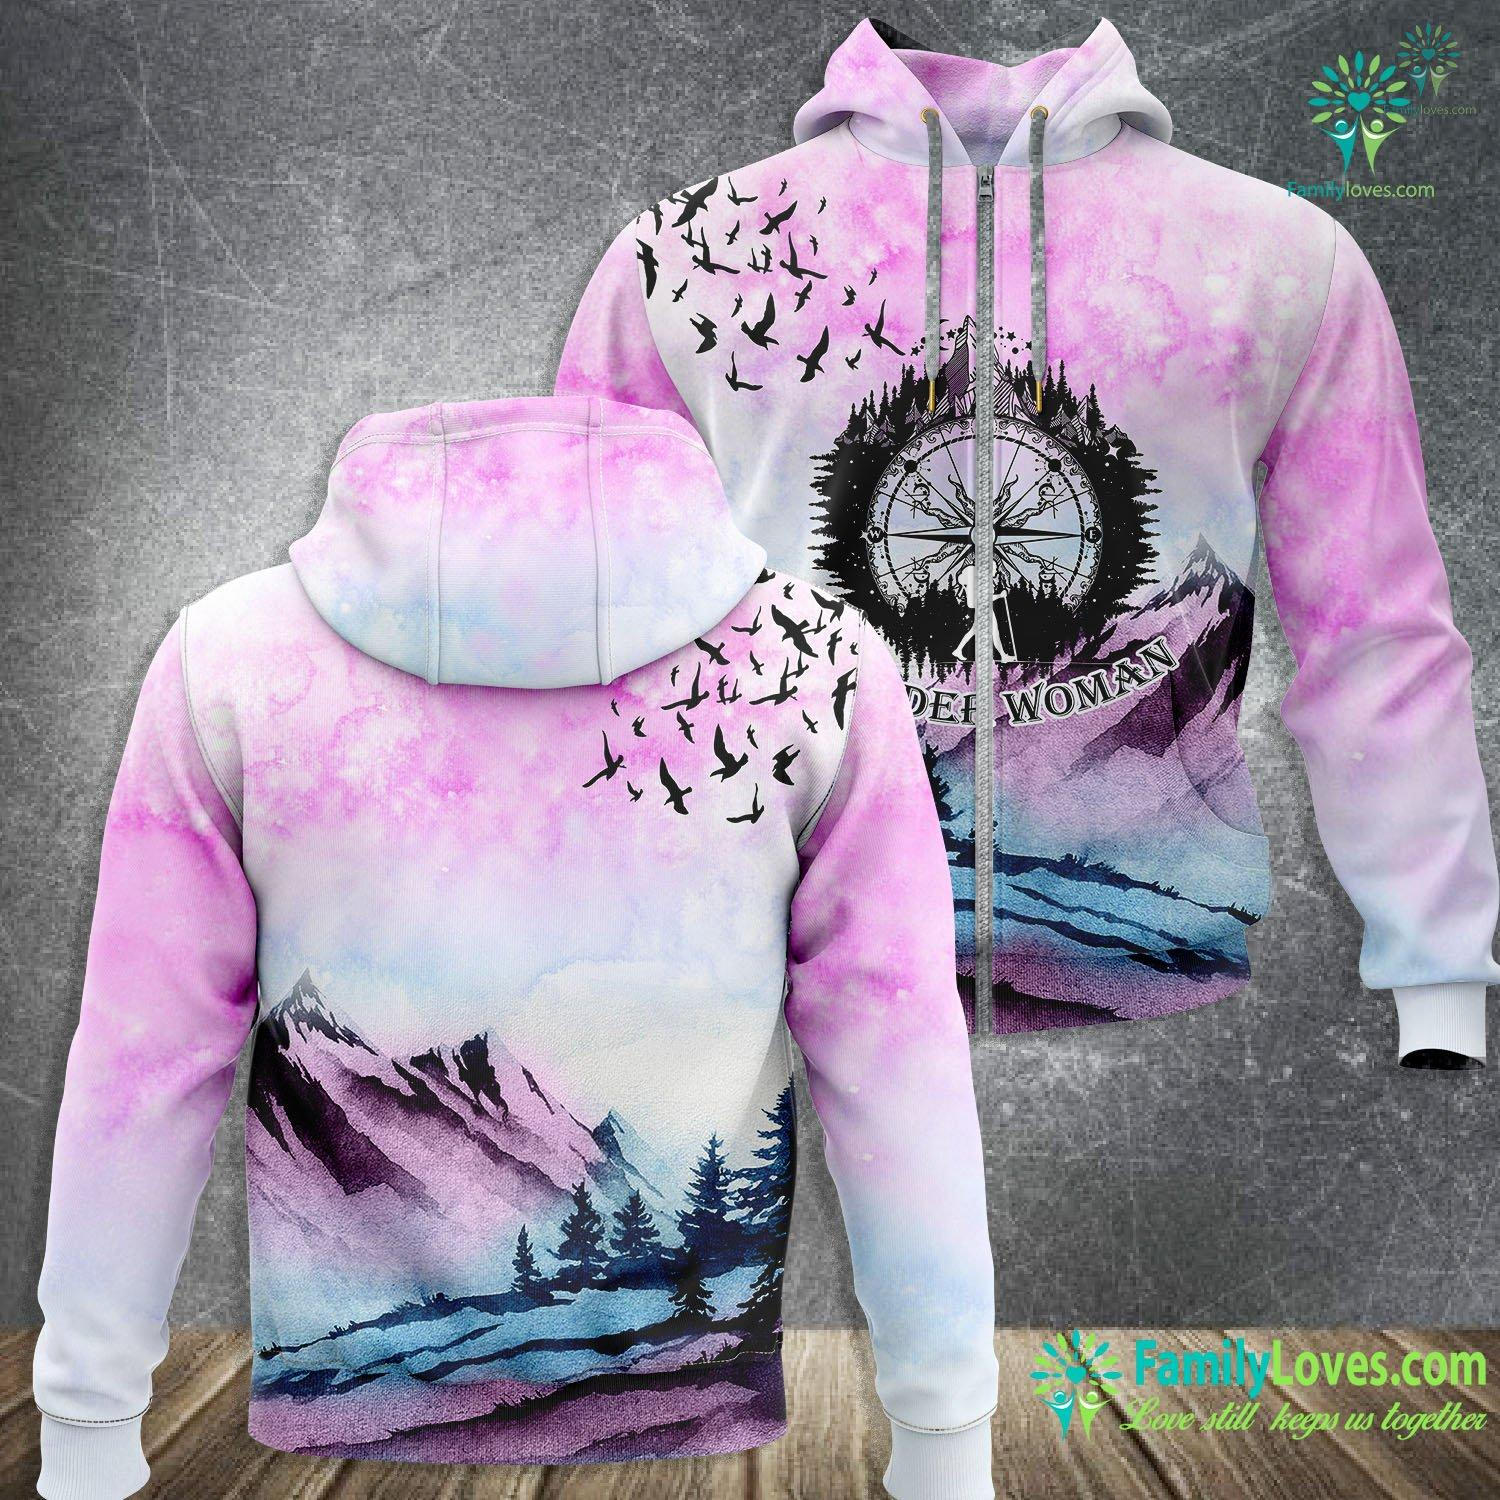 Camping Wander Woman 3D All Over Printed Zip Hoodie Familyloves.com